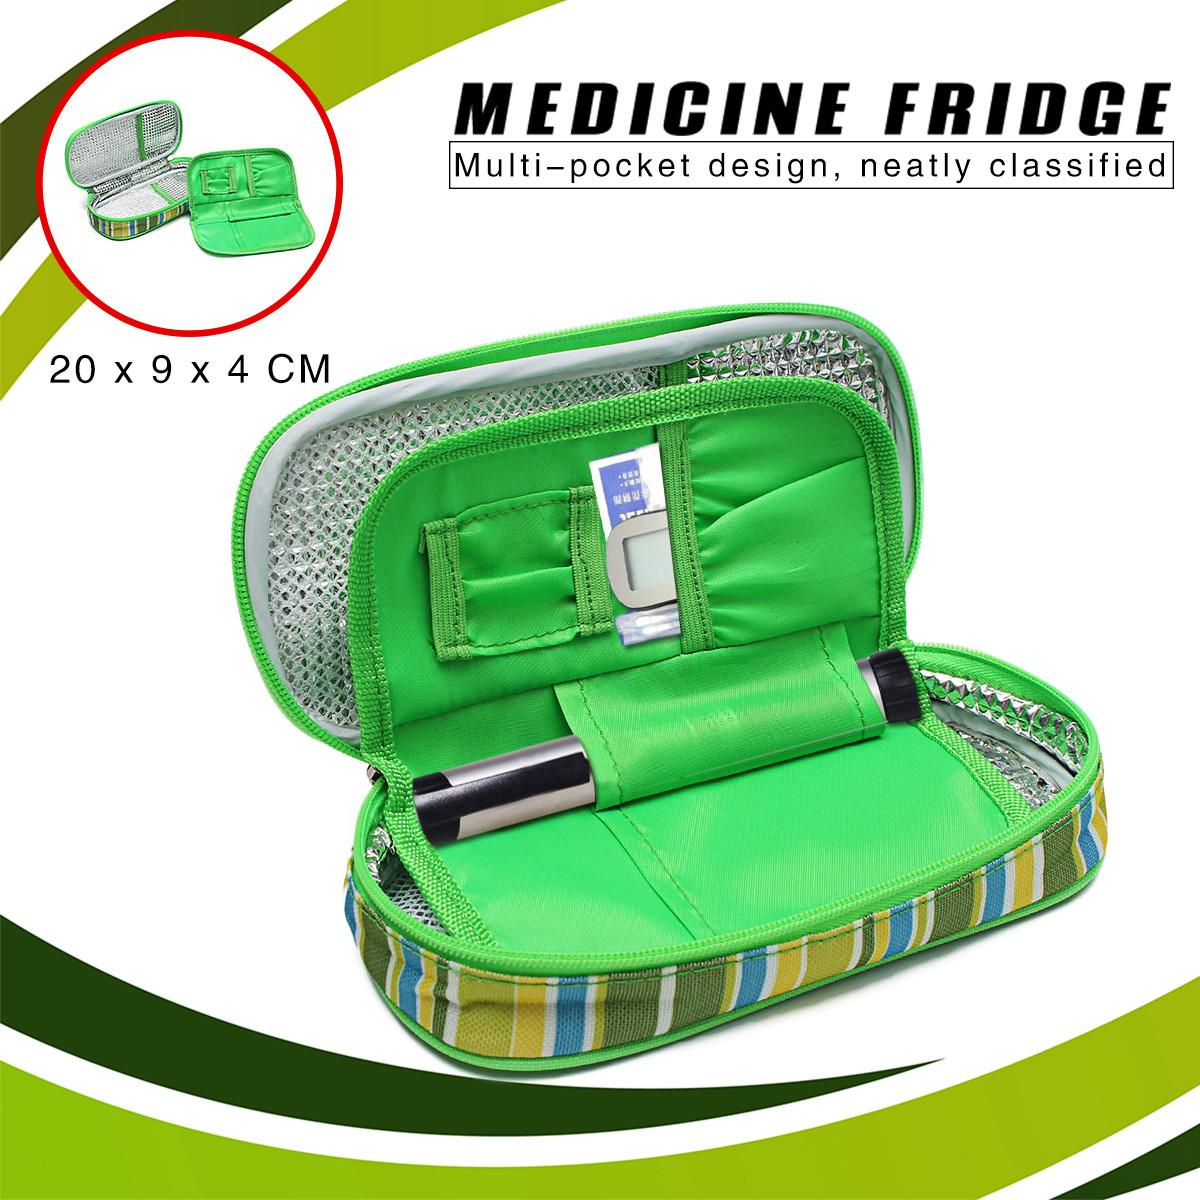 2-Layer Portable Medicine Diabetic Insulin Cooling Pouch Cooler Ice Pack Bag Travel Case Travel Case Cooler Box Aluminum Ice Bag